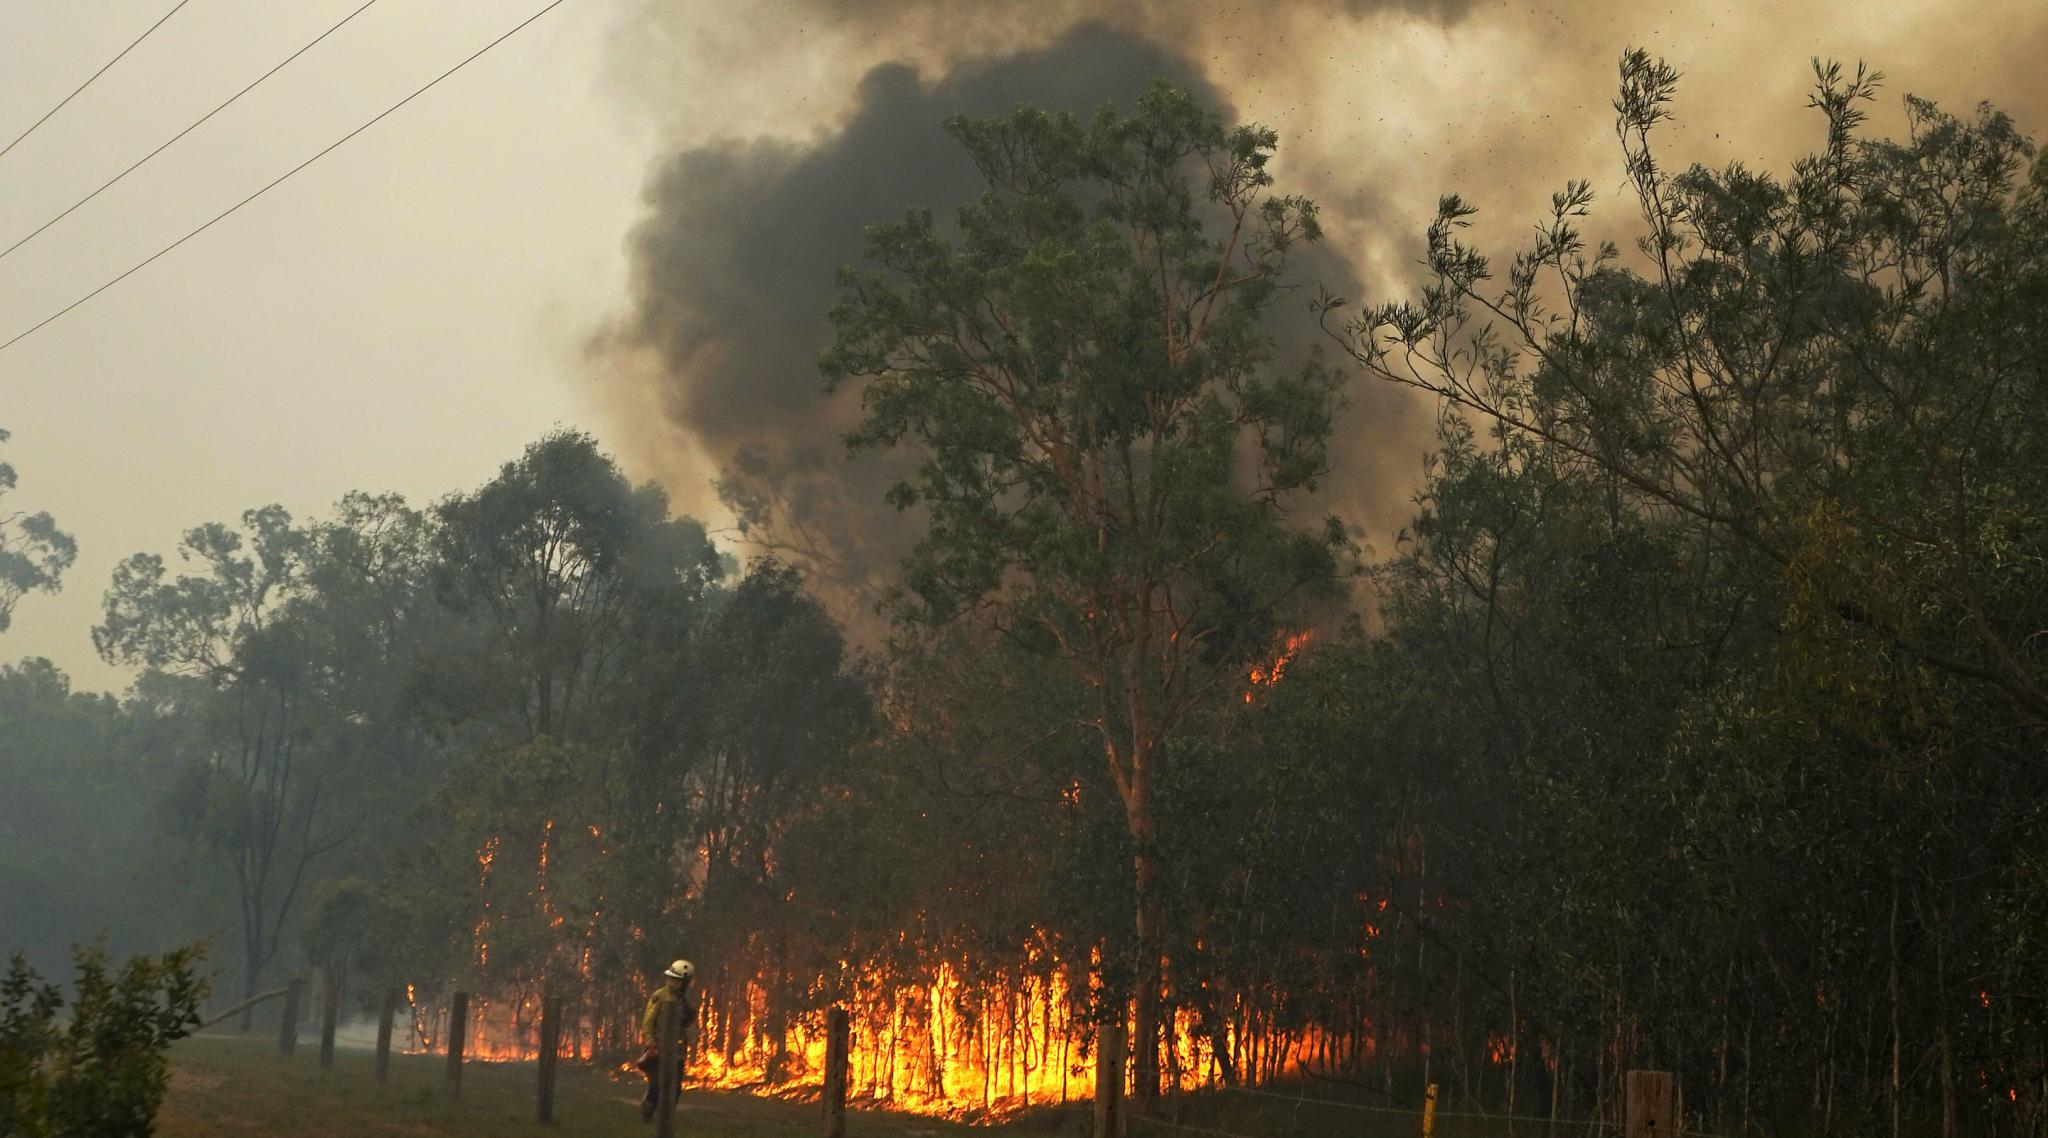 Queensland Bushfires: Australia State Declares Fire Emergency After 150 Homes Lost